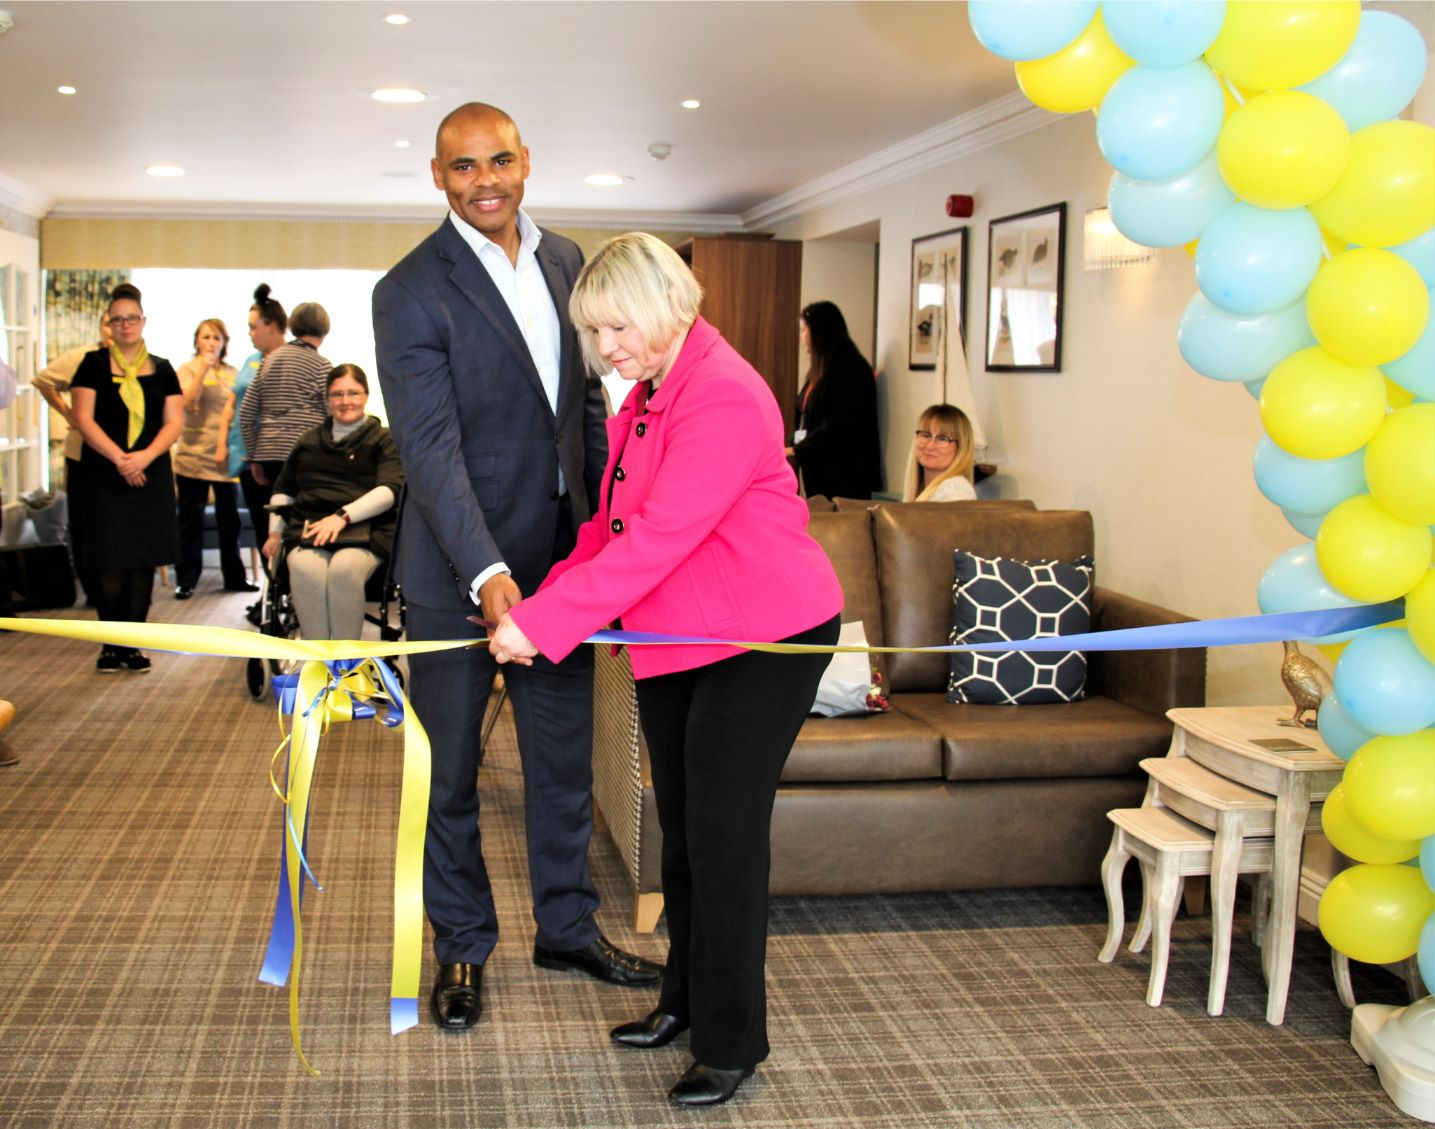 Bamfield Lodge Care Home, Bristol-The Mayor and Deputy Mayor cutting the ribbon to officially open our new look home